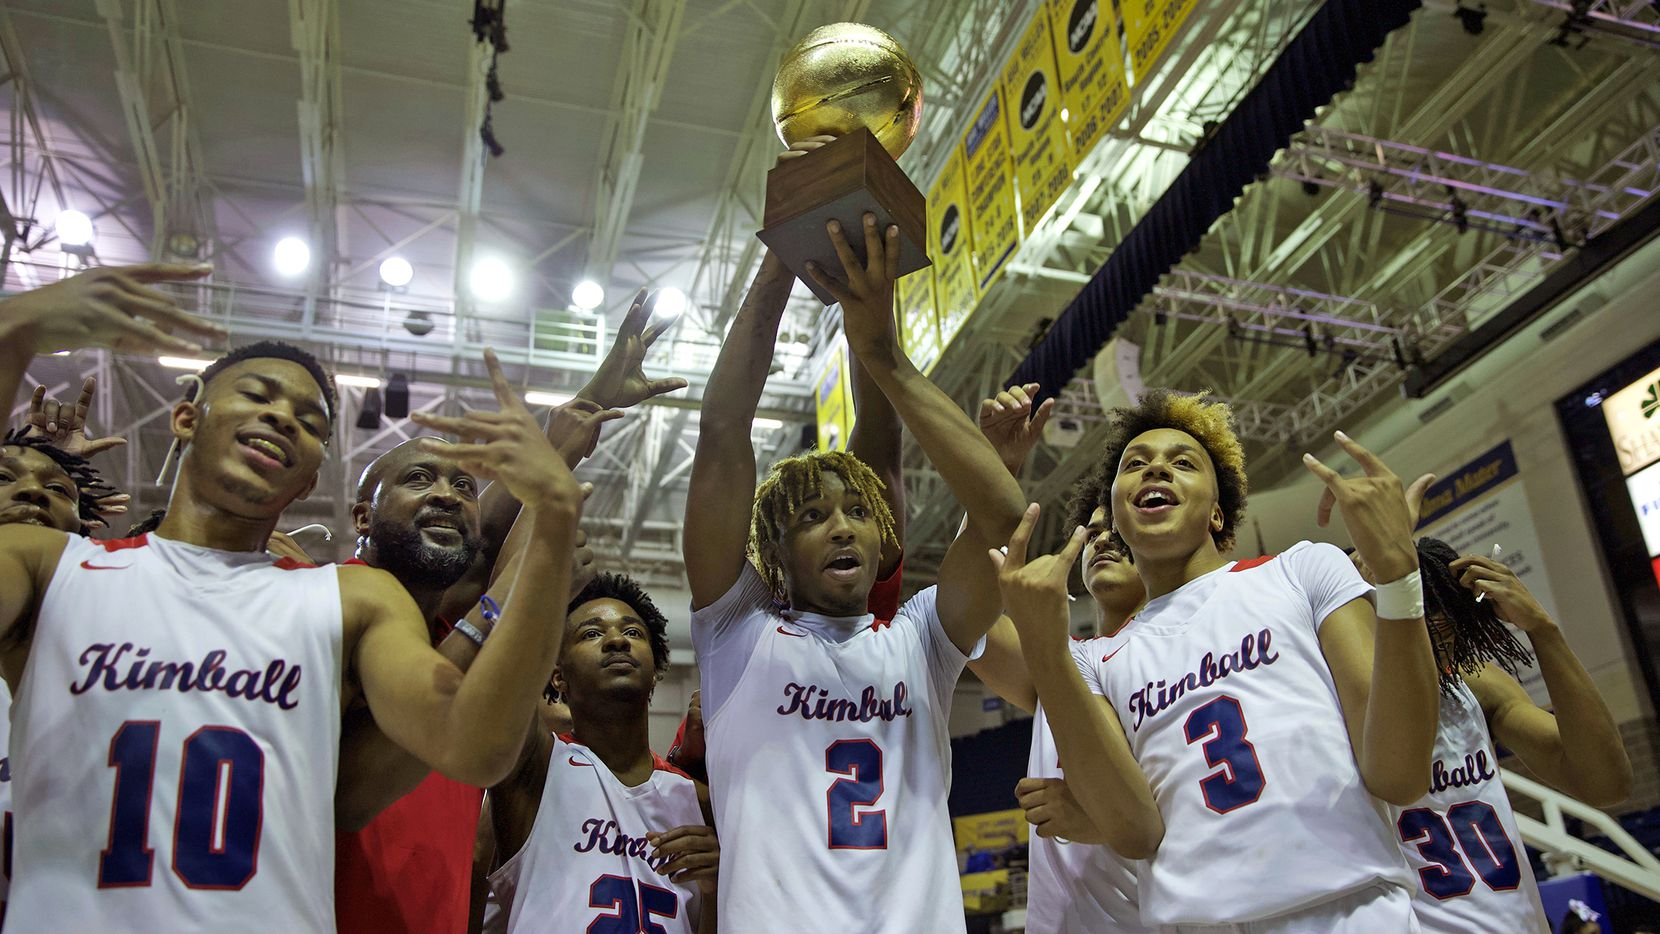 Players and coaches for Kimball celebrate a win over Amarillo in the UIL 5A state semifinal game against Amarillo in San Angelo, TX on Tuesday, March 9, 2021.